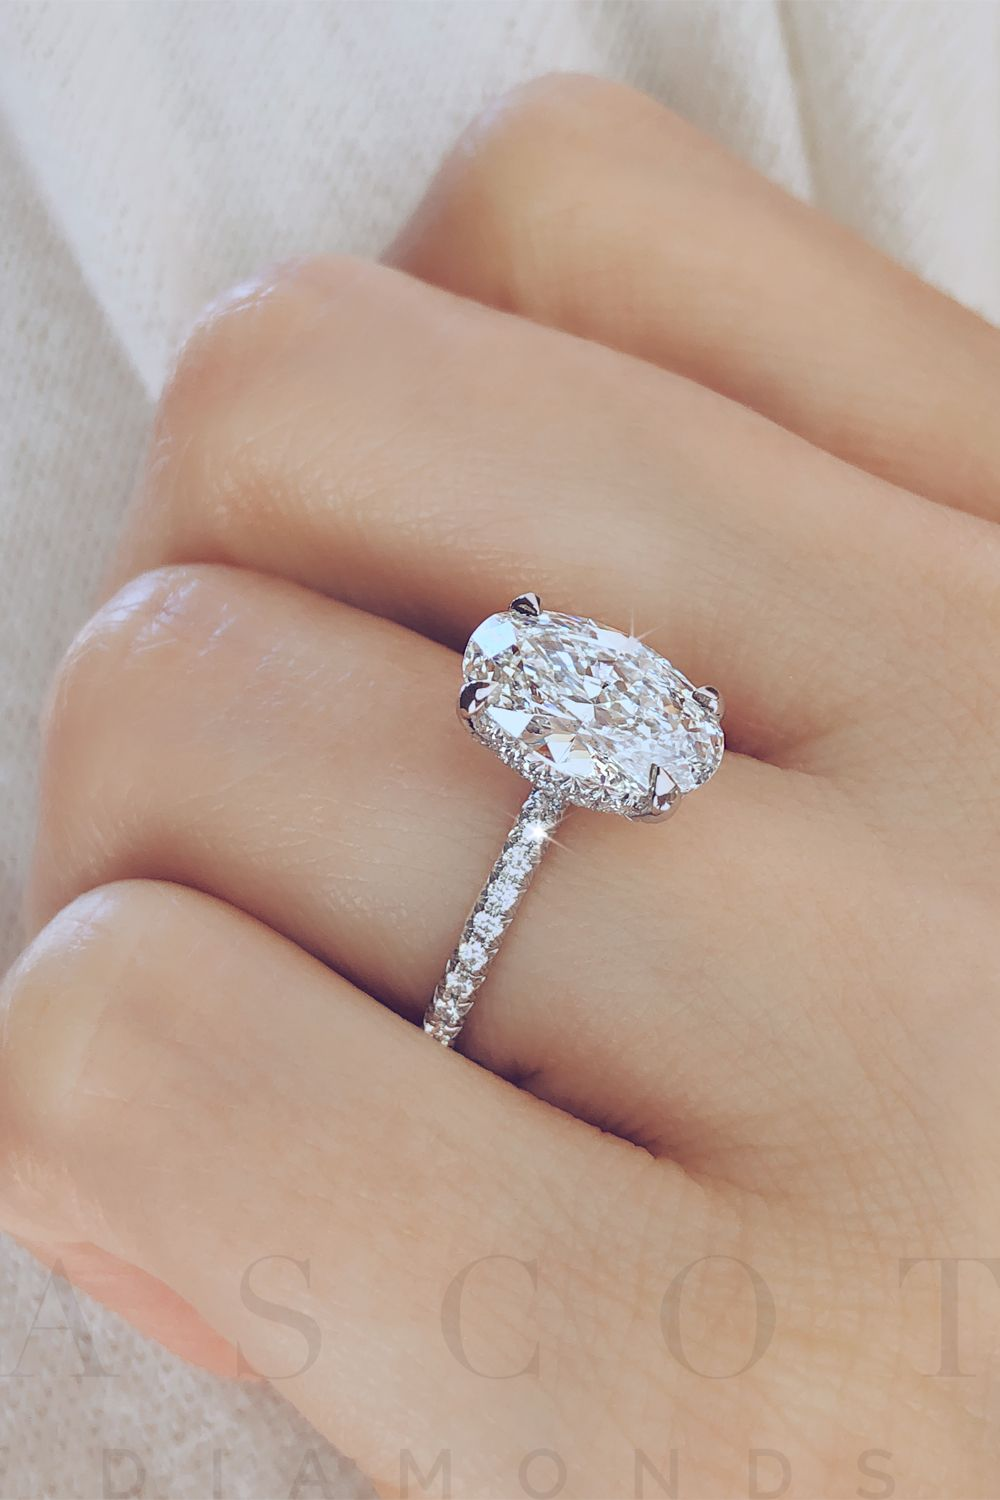 Oval cut diamond solitaire with a hidden halo. By Ascot Diamonds